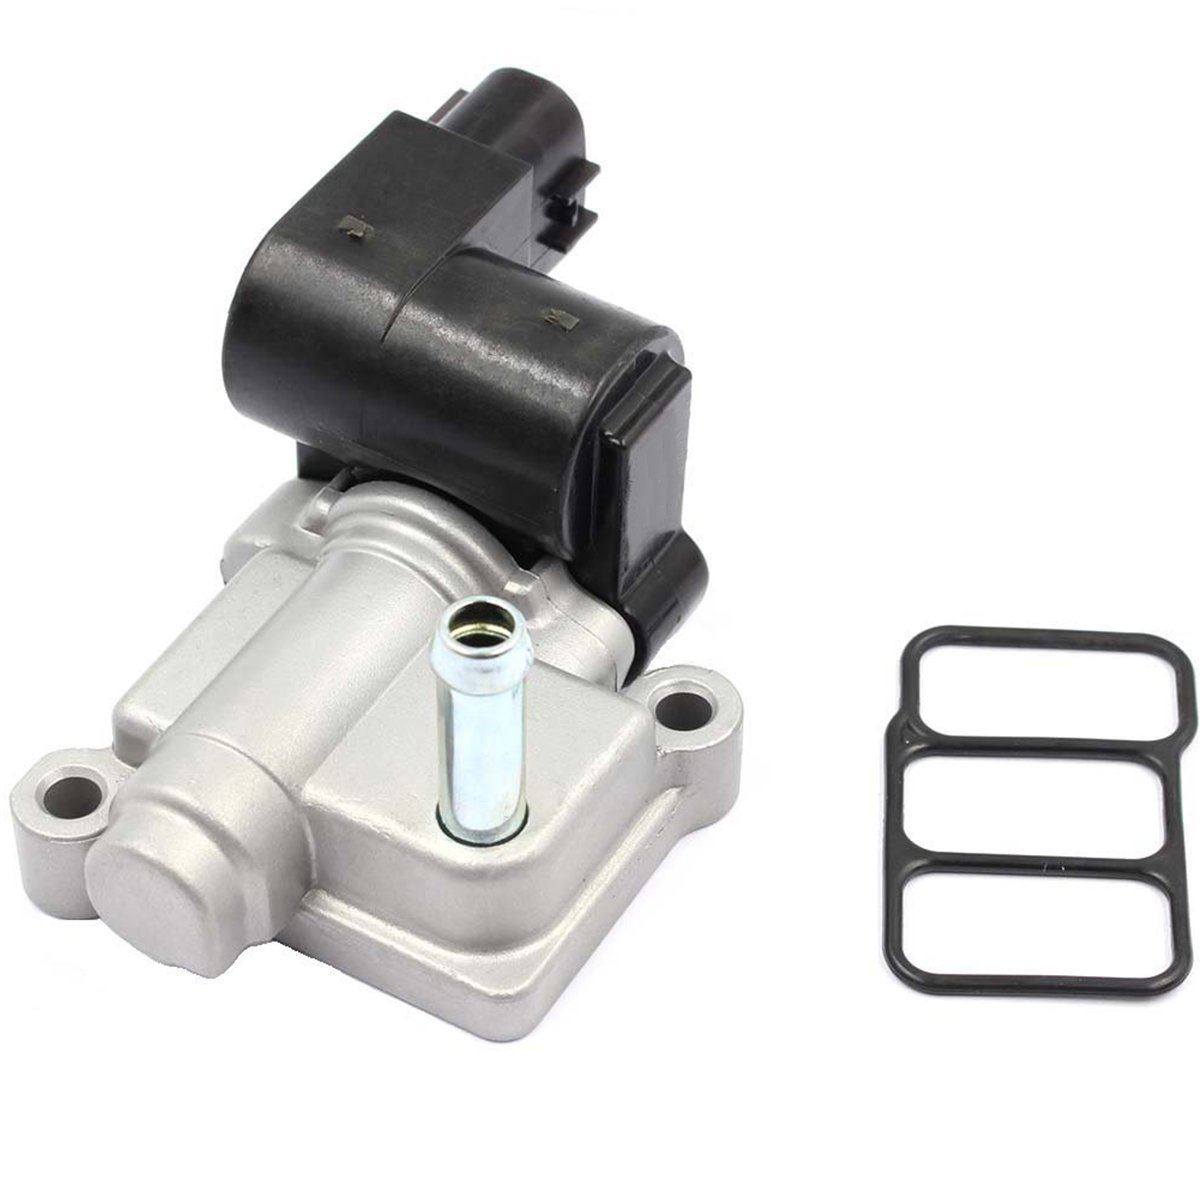 Idle Air Control Valve Motor IACV IAC Fits Honda Acura V6 with Gasket P8A,Part Number: 16022P8AA01/16022P8AA02/16022P8AA03, AC229, 2H1016 by Amhousejoy SHANGHAI QICHEN VEHICLE PARTS